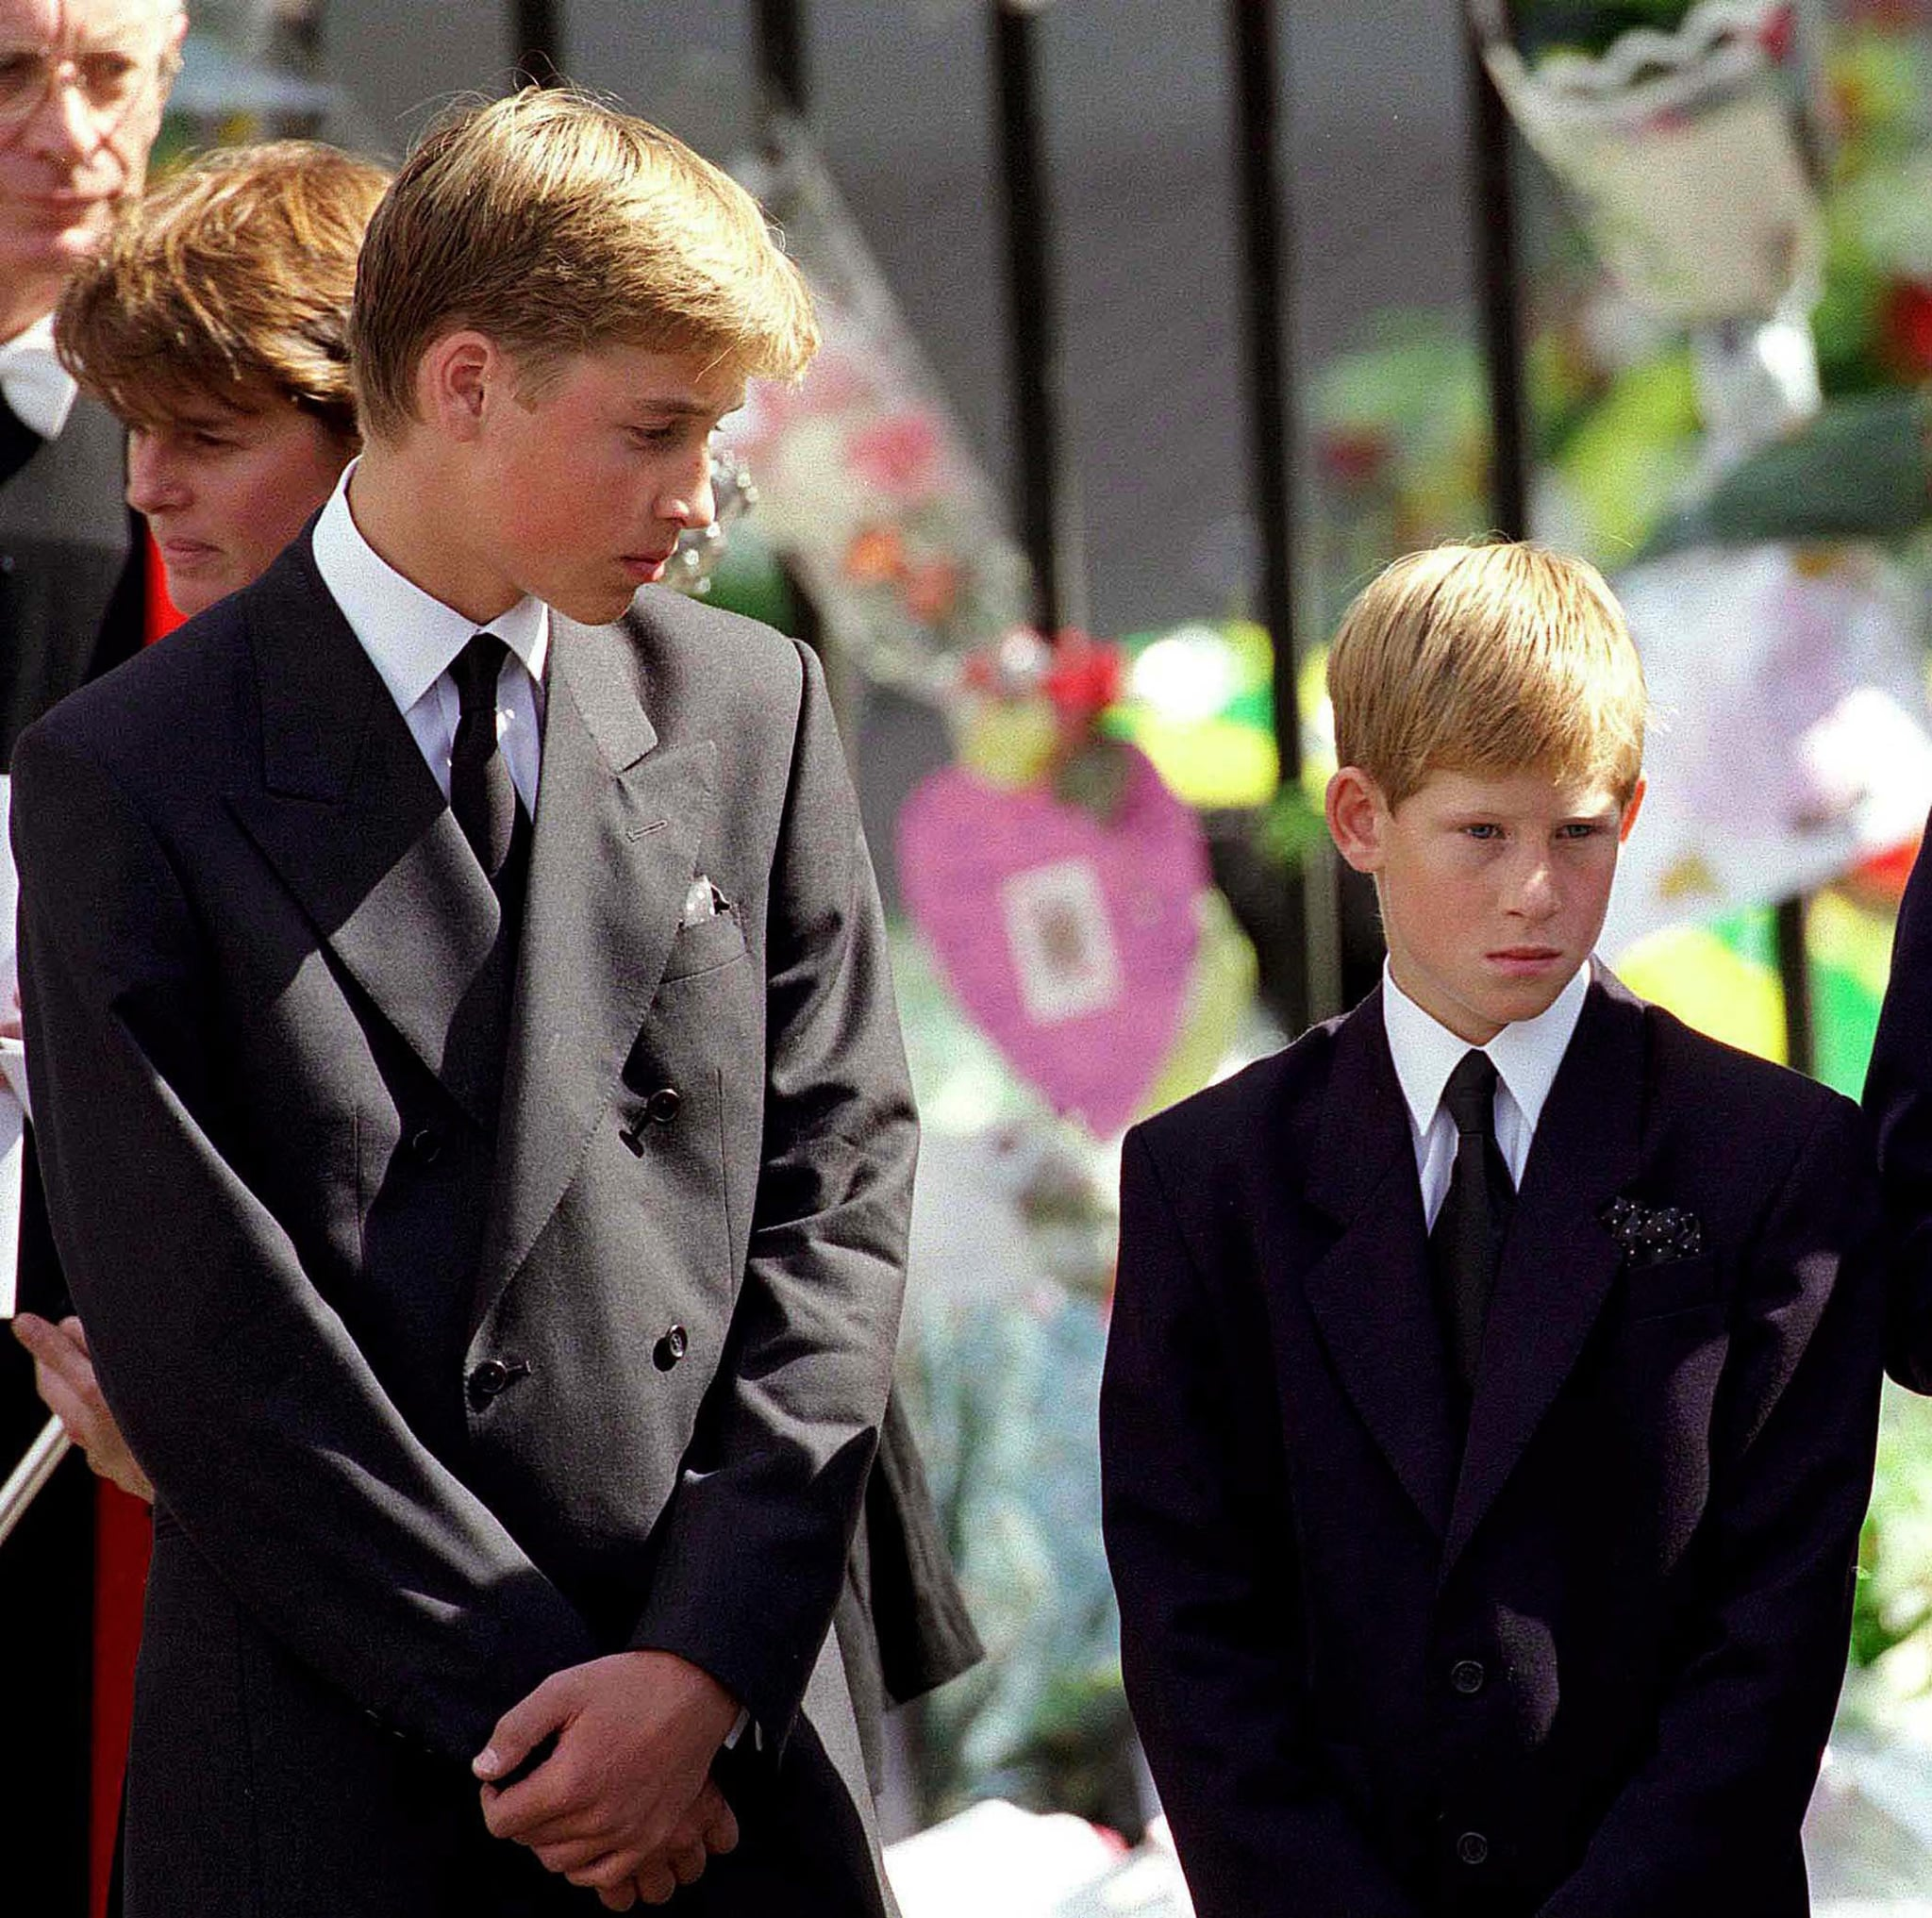 Where Were Prince Harry And Prince William When Diana Died